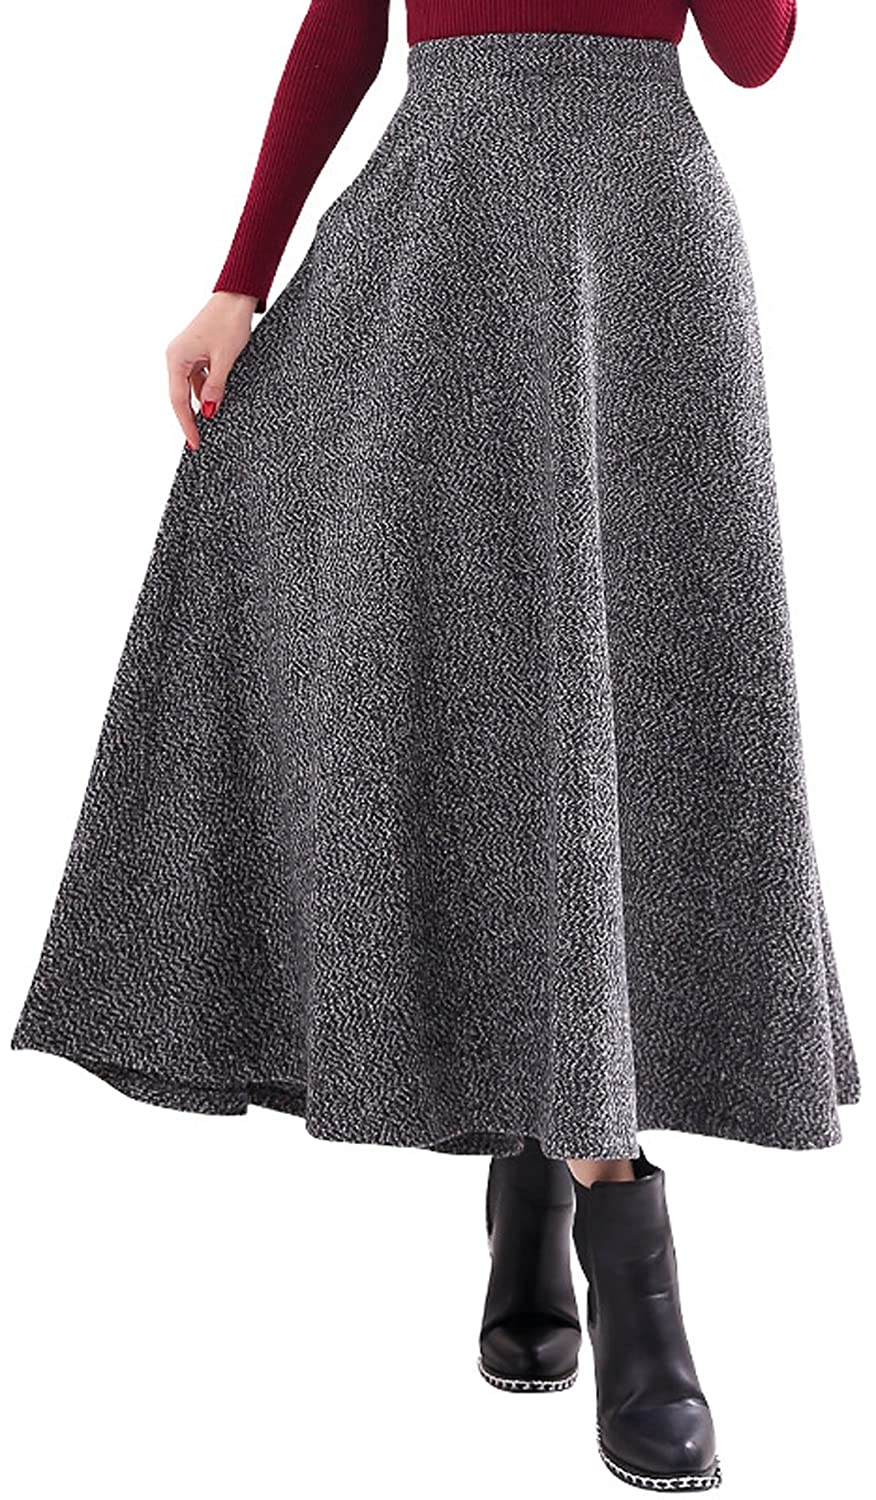 Victorian Skirts | Bustle, Walking, Edwardian Skirts chouyatou Womens Elegant High-Waist Wool A-Line Maxi Skirt with Pockets $32.98 AT vintagedancer.com